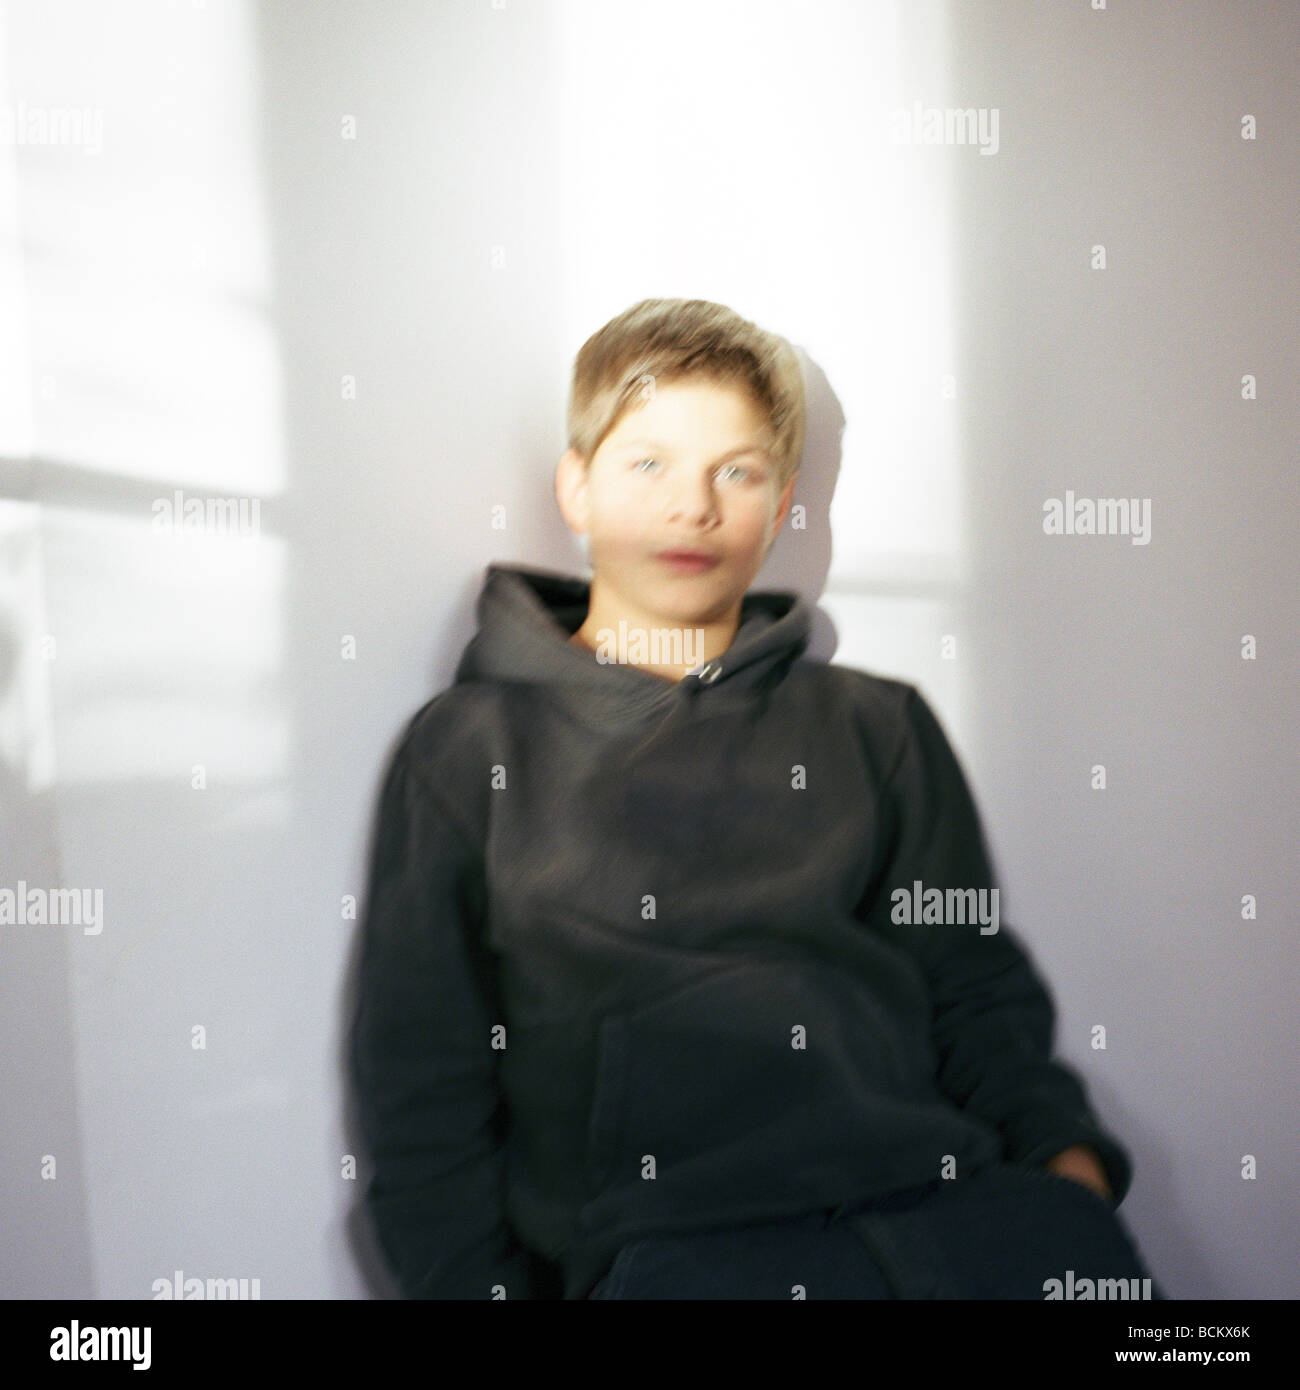 Boy leaning against wall with shadows - Stock Image